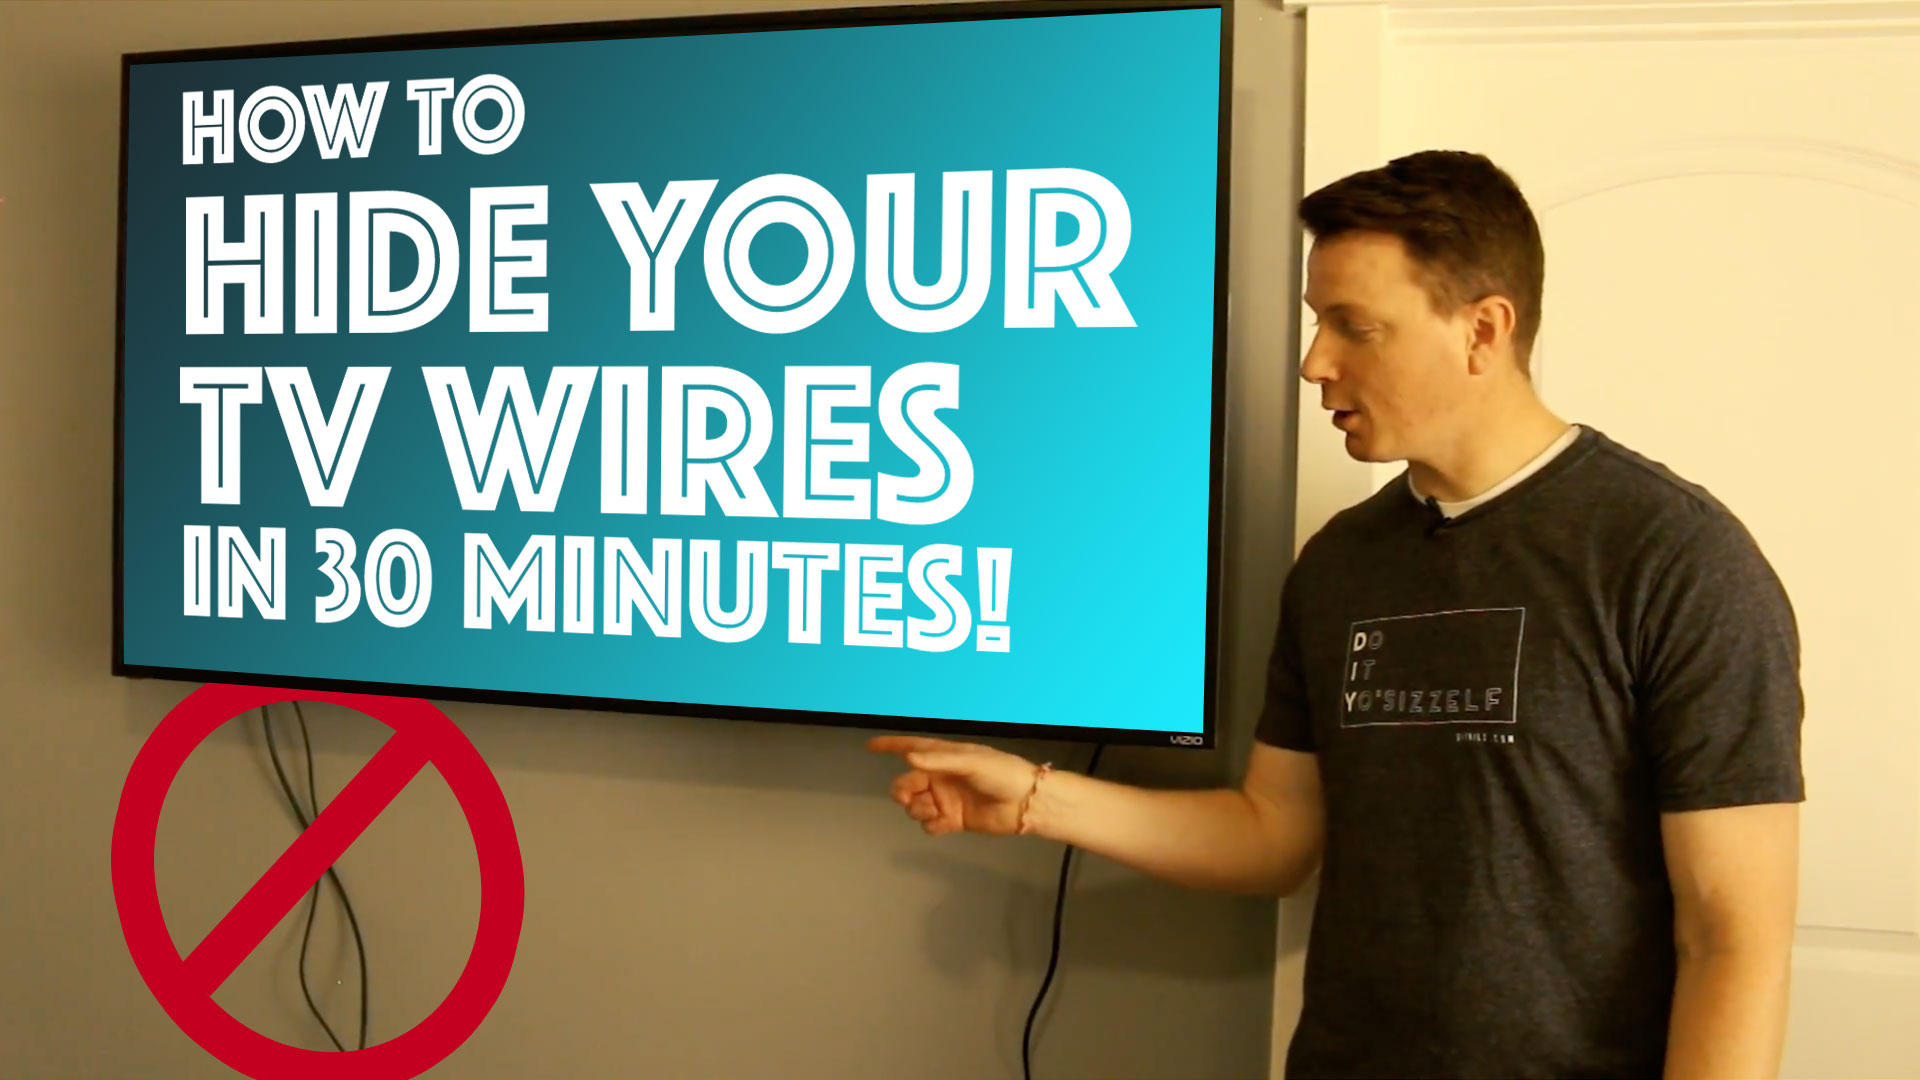 How to Hide Your TV Wires in 30 Minutes